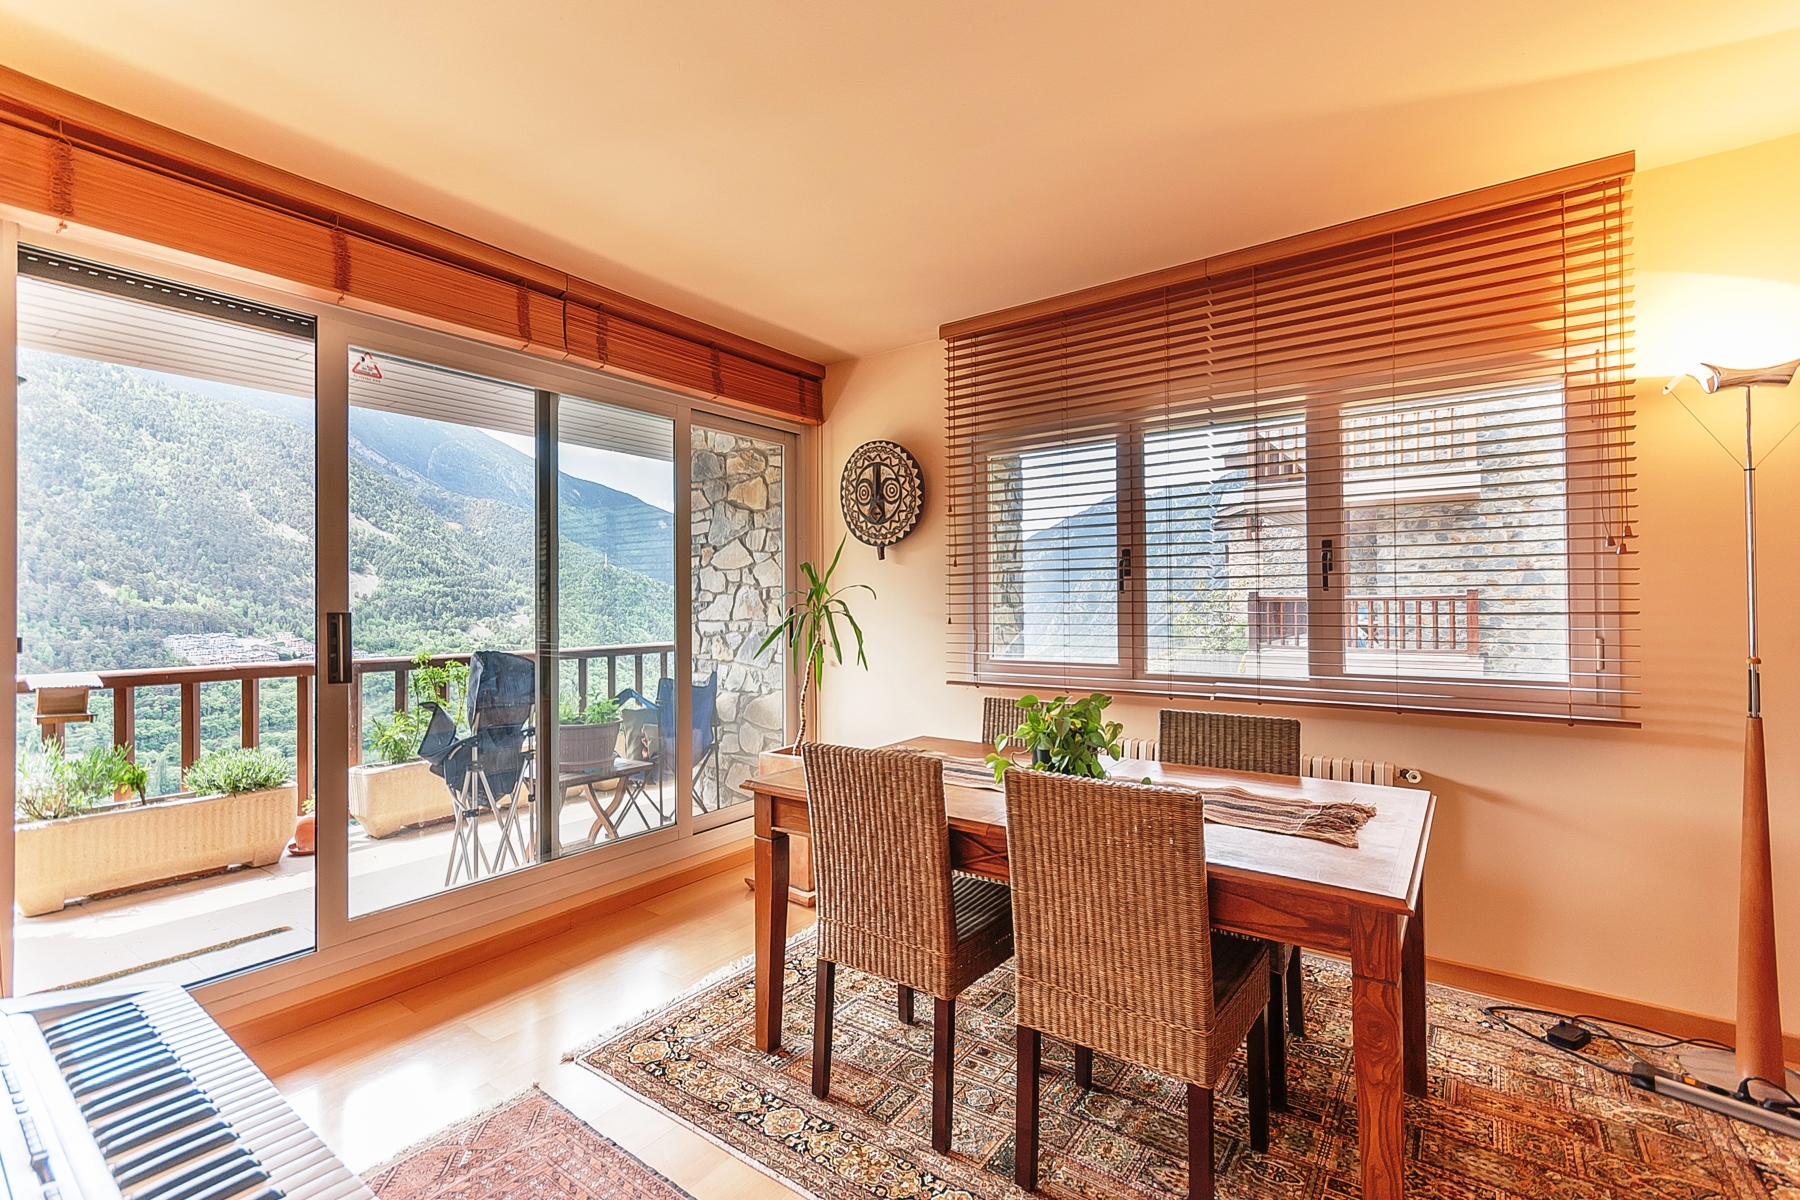 Apartment for Sale at Flat for sale in Escaldes-Engordany Escaldes Engordany, Escaldes Engordany, AD700 Andorra